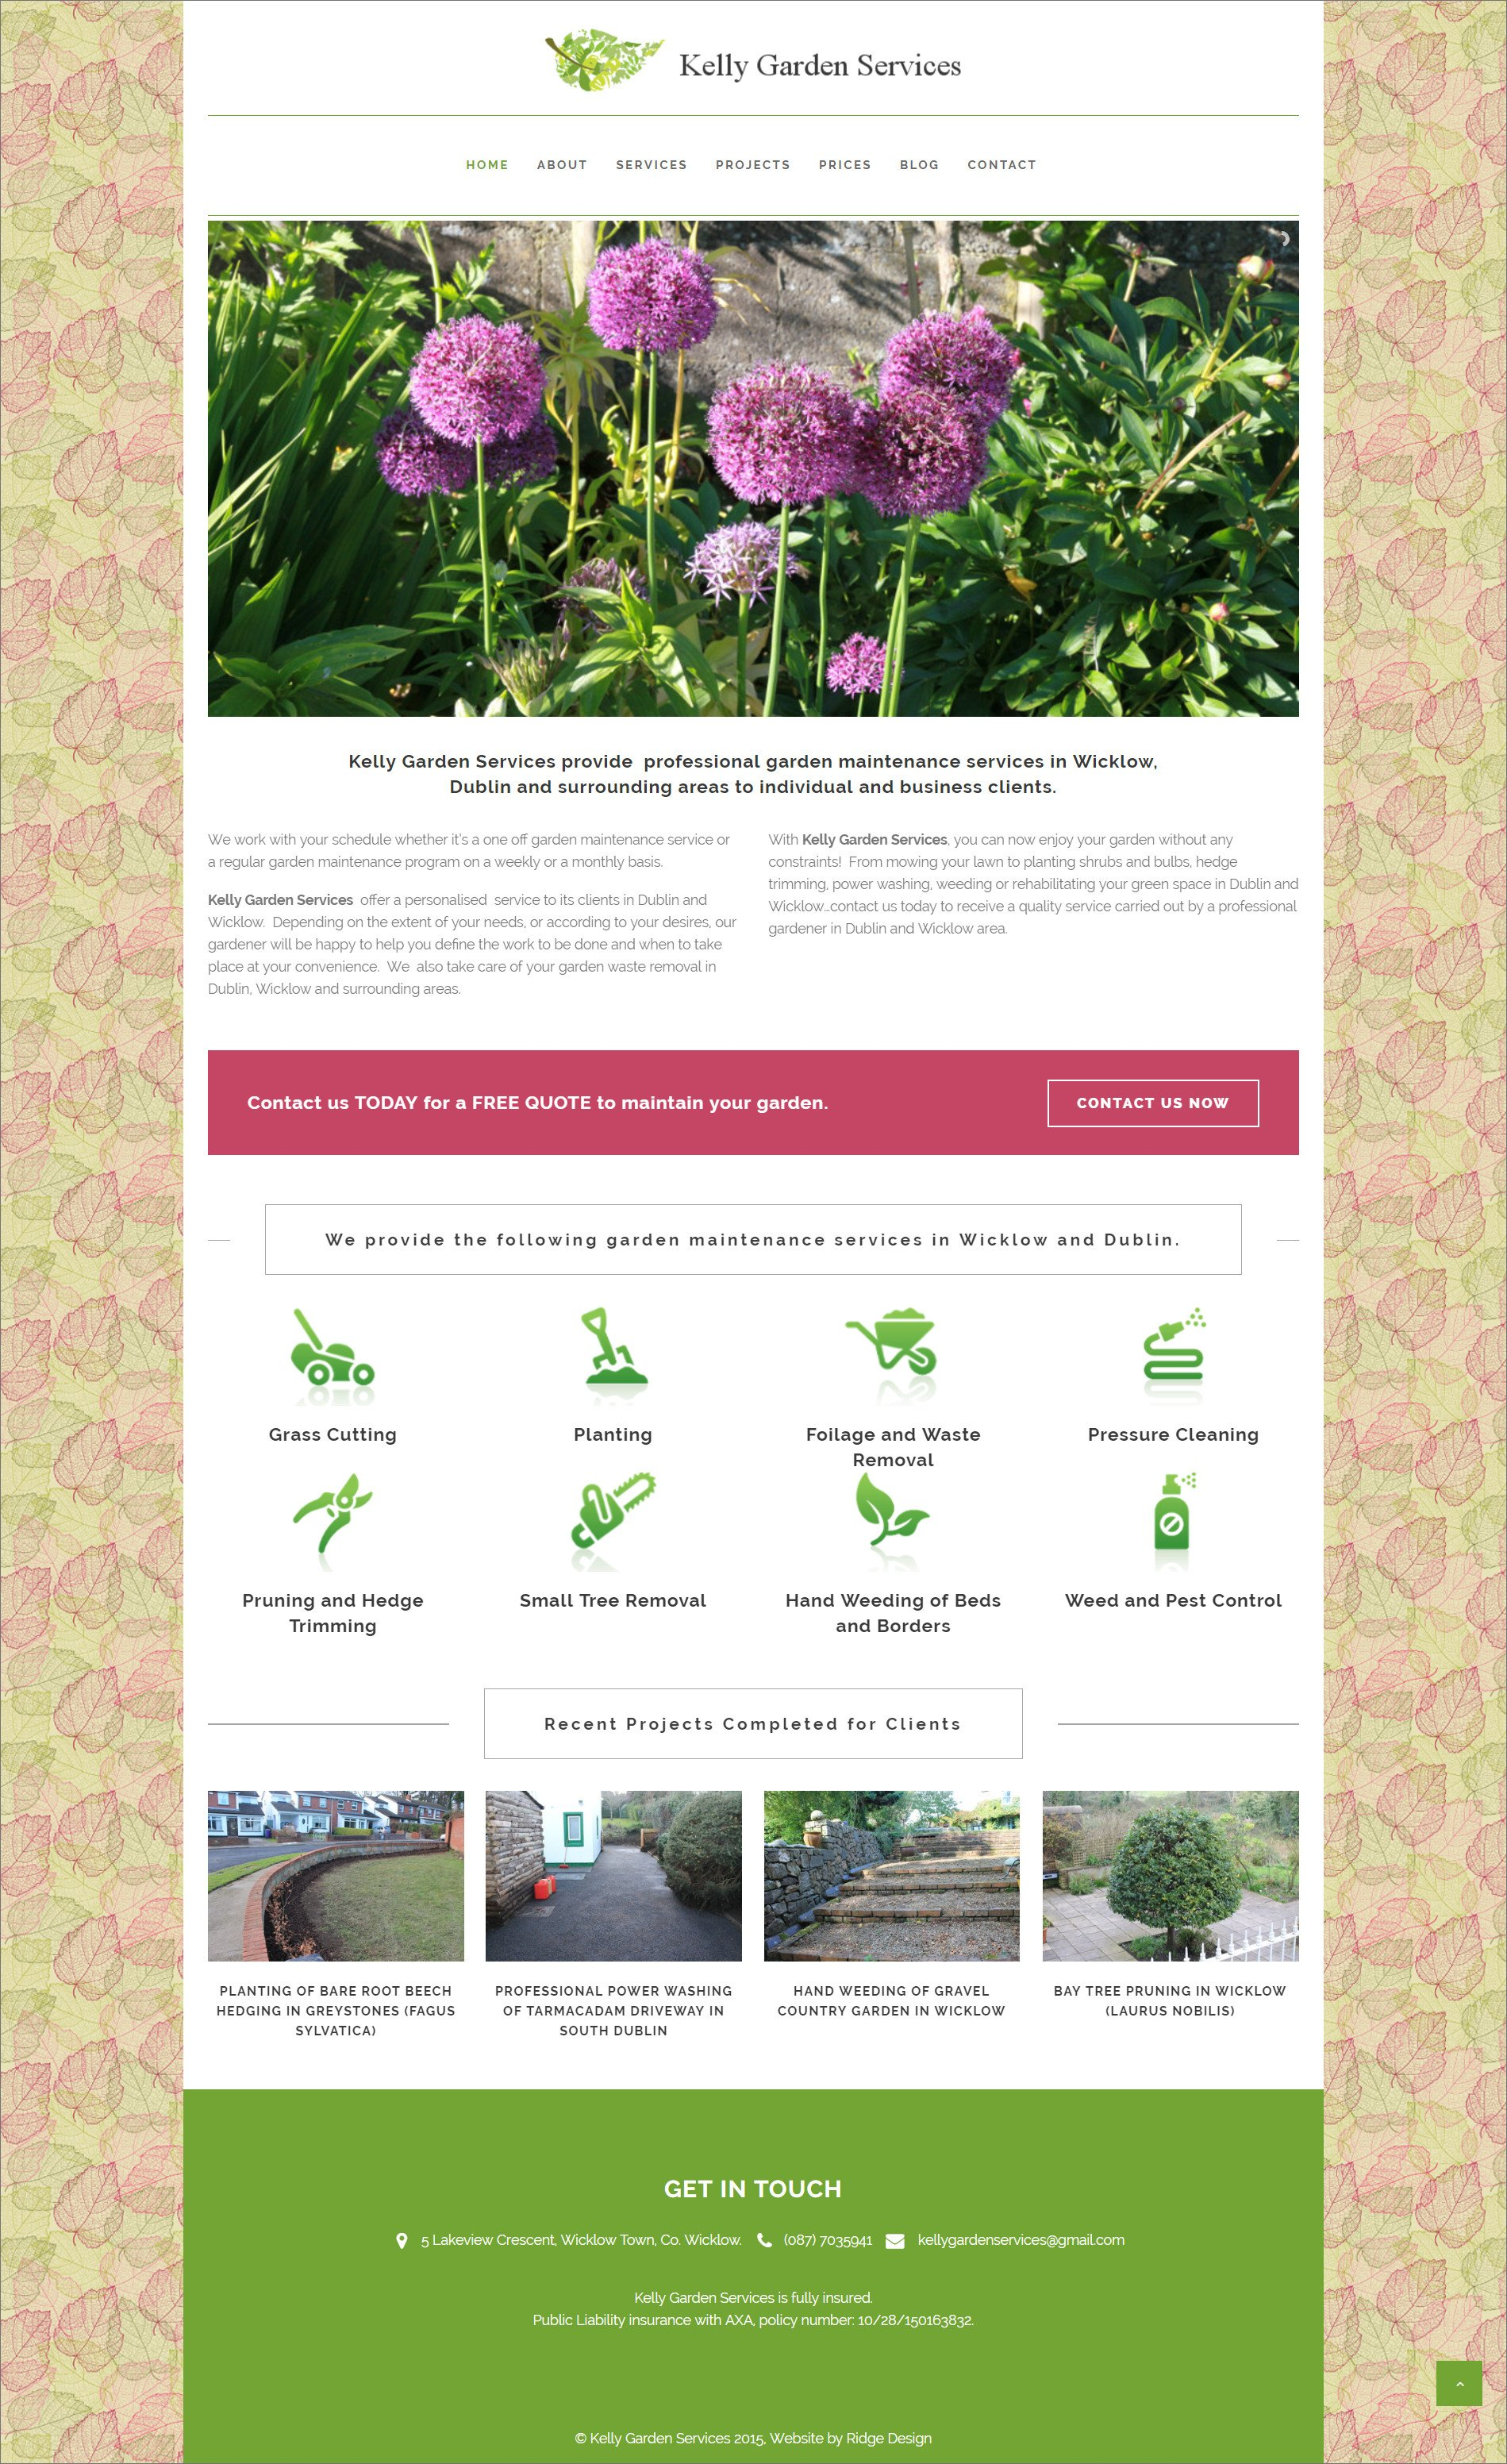 Kelly Gardening Services website designed by Ridge Design visual of home page